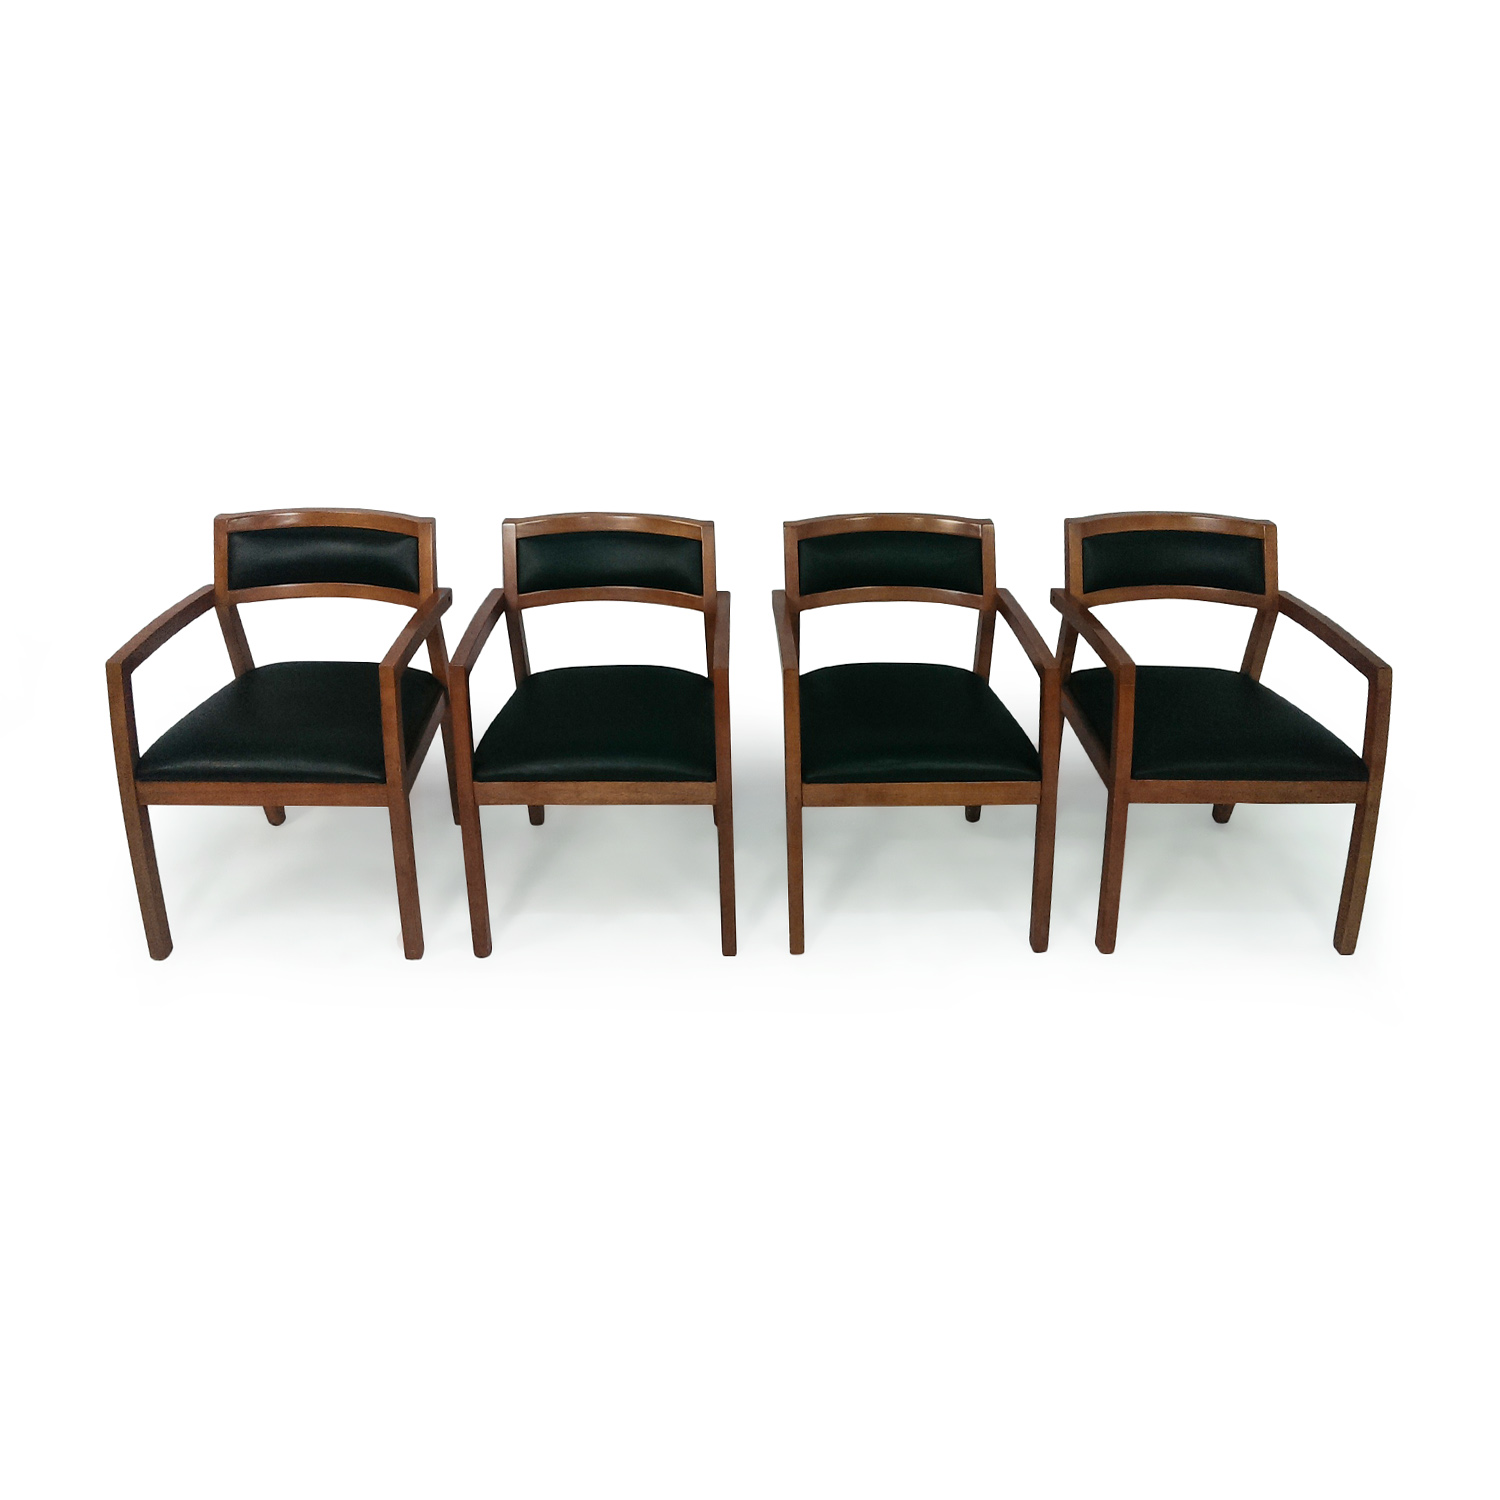 Set of 4 Office Chairs Chairs